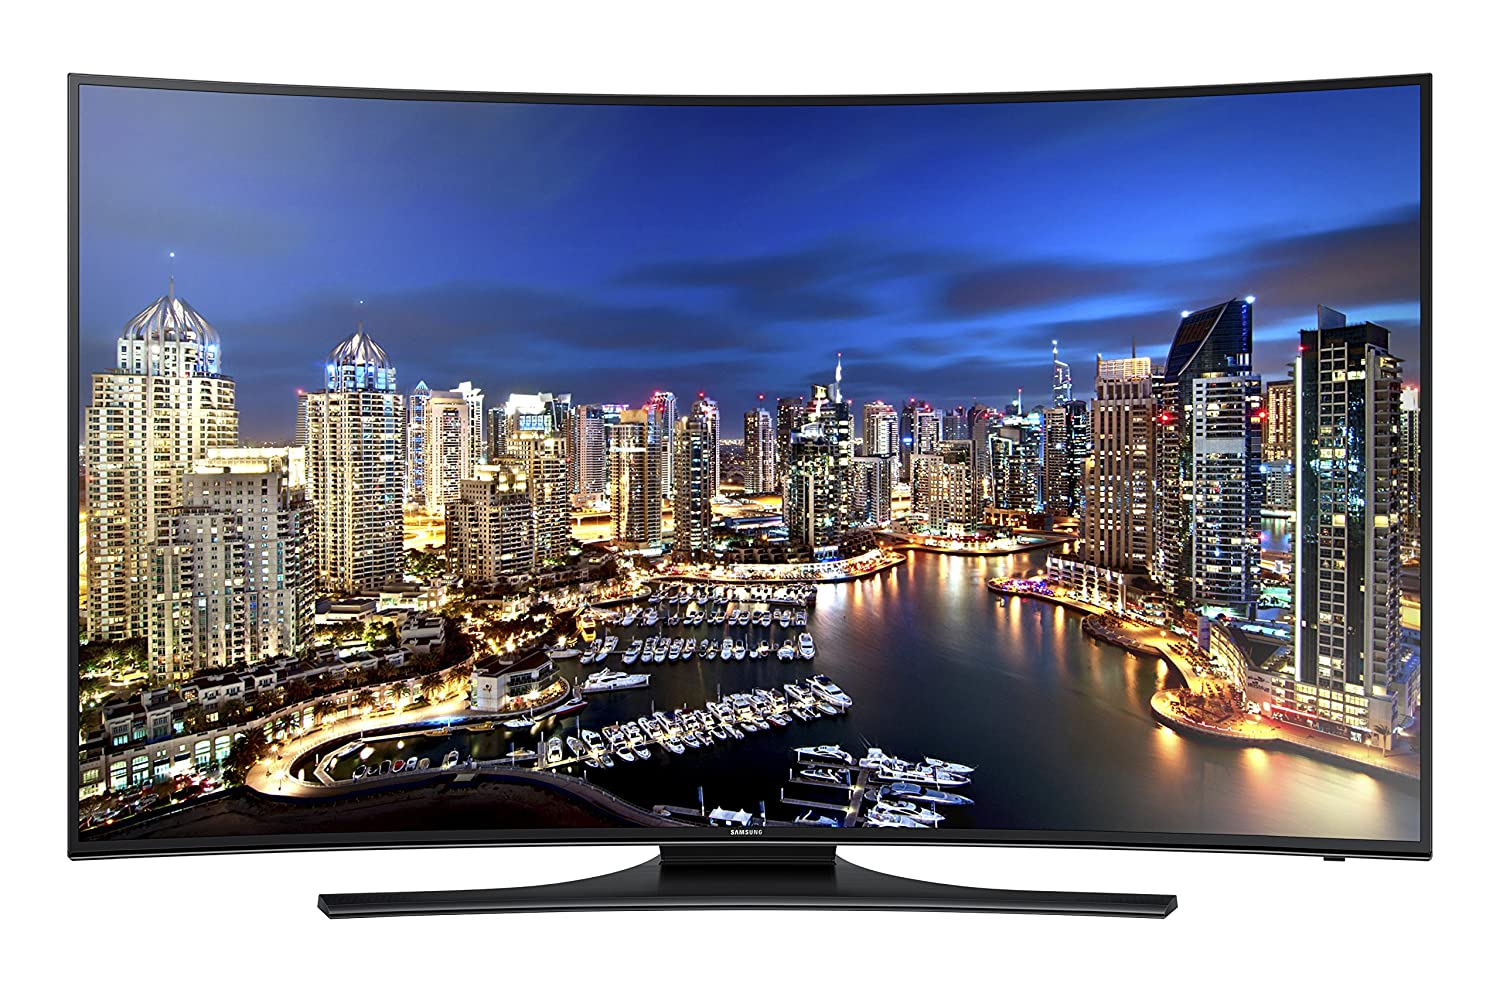 Up to 35% Off Select Samsung TVs